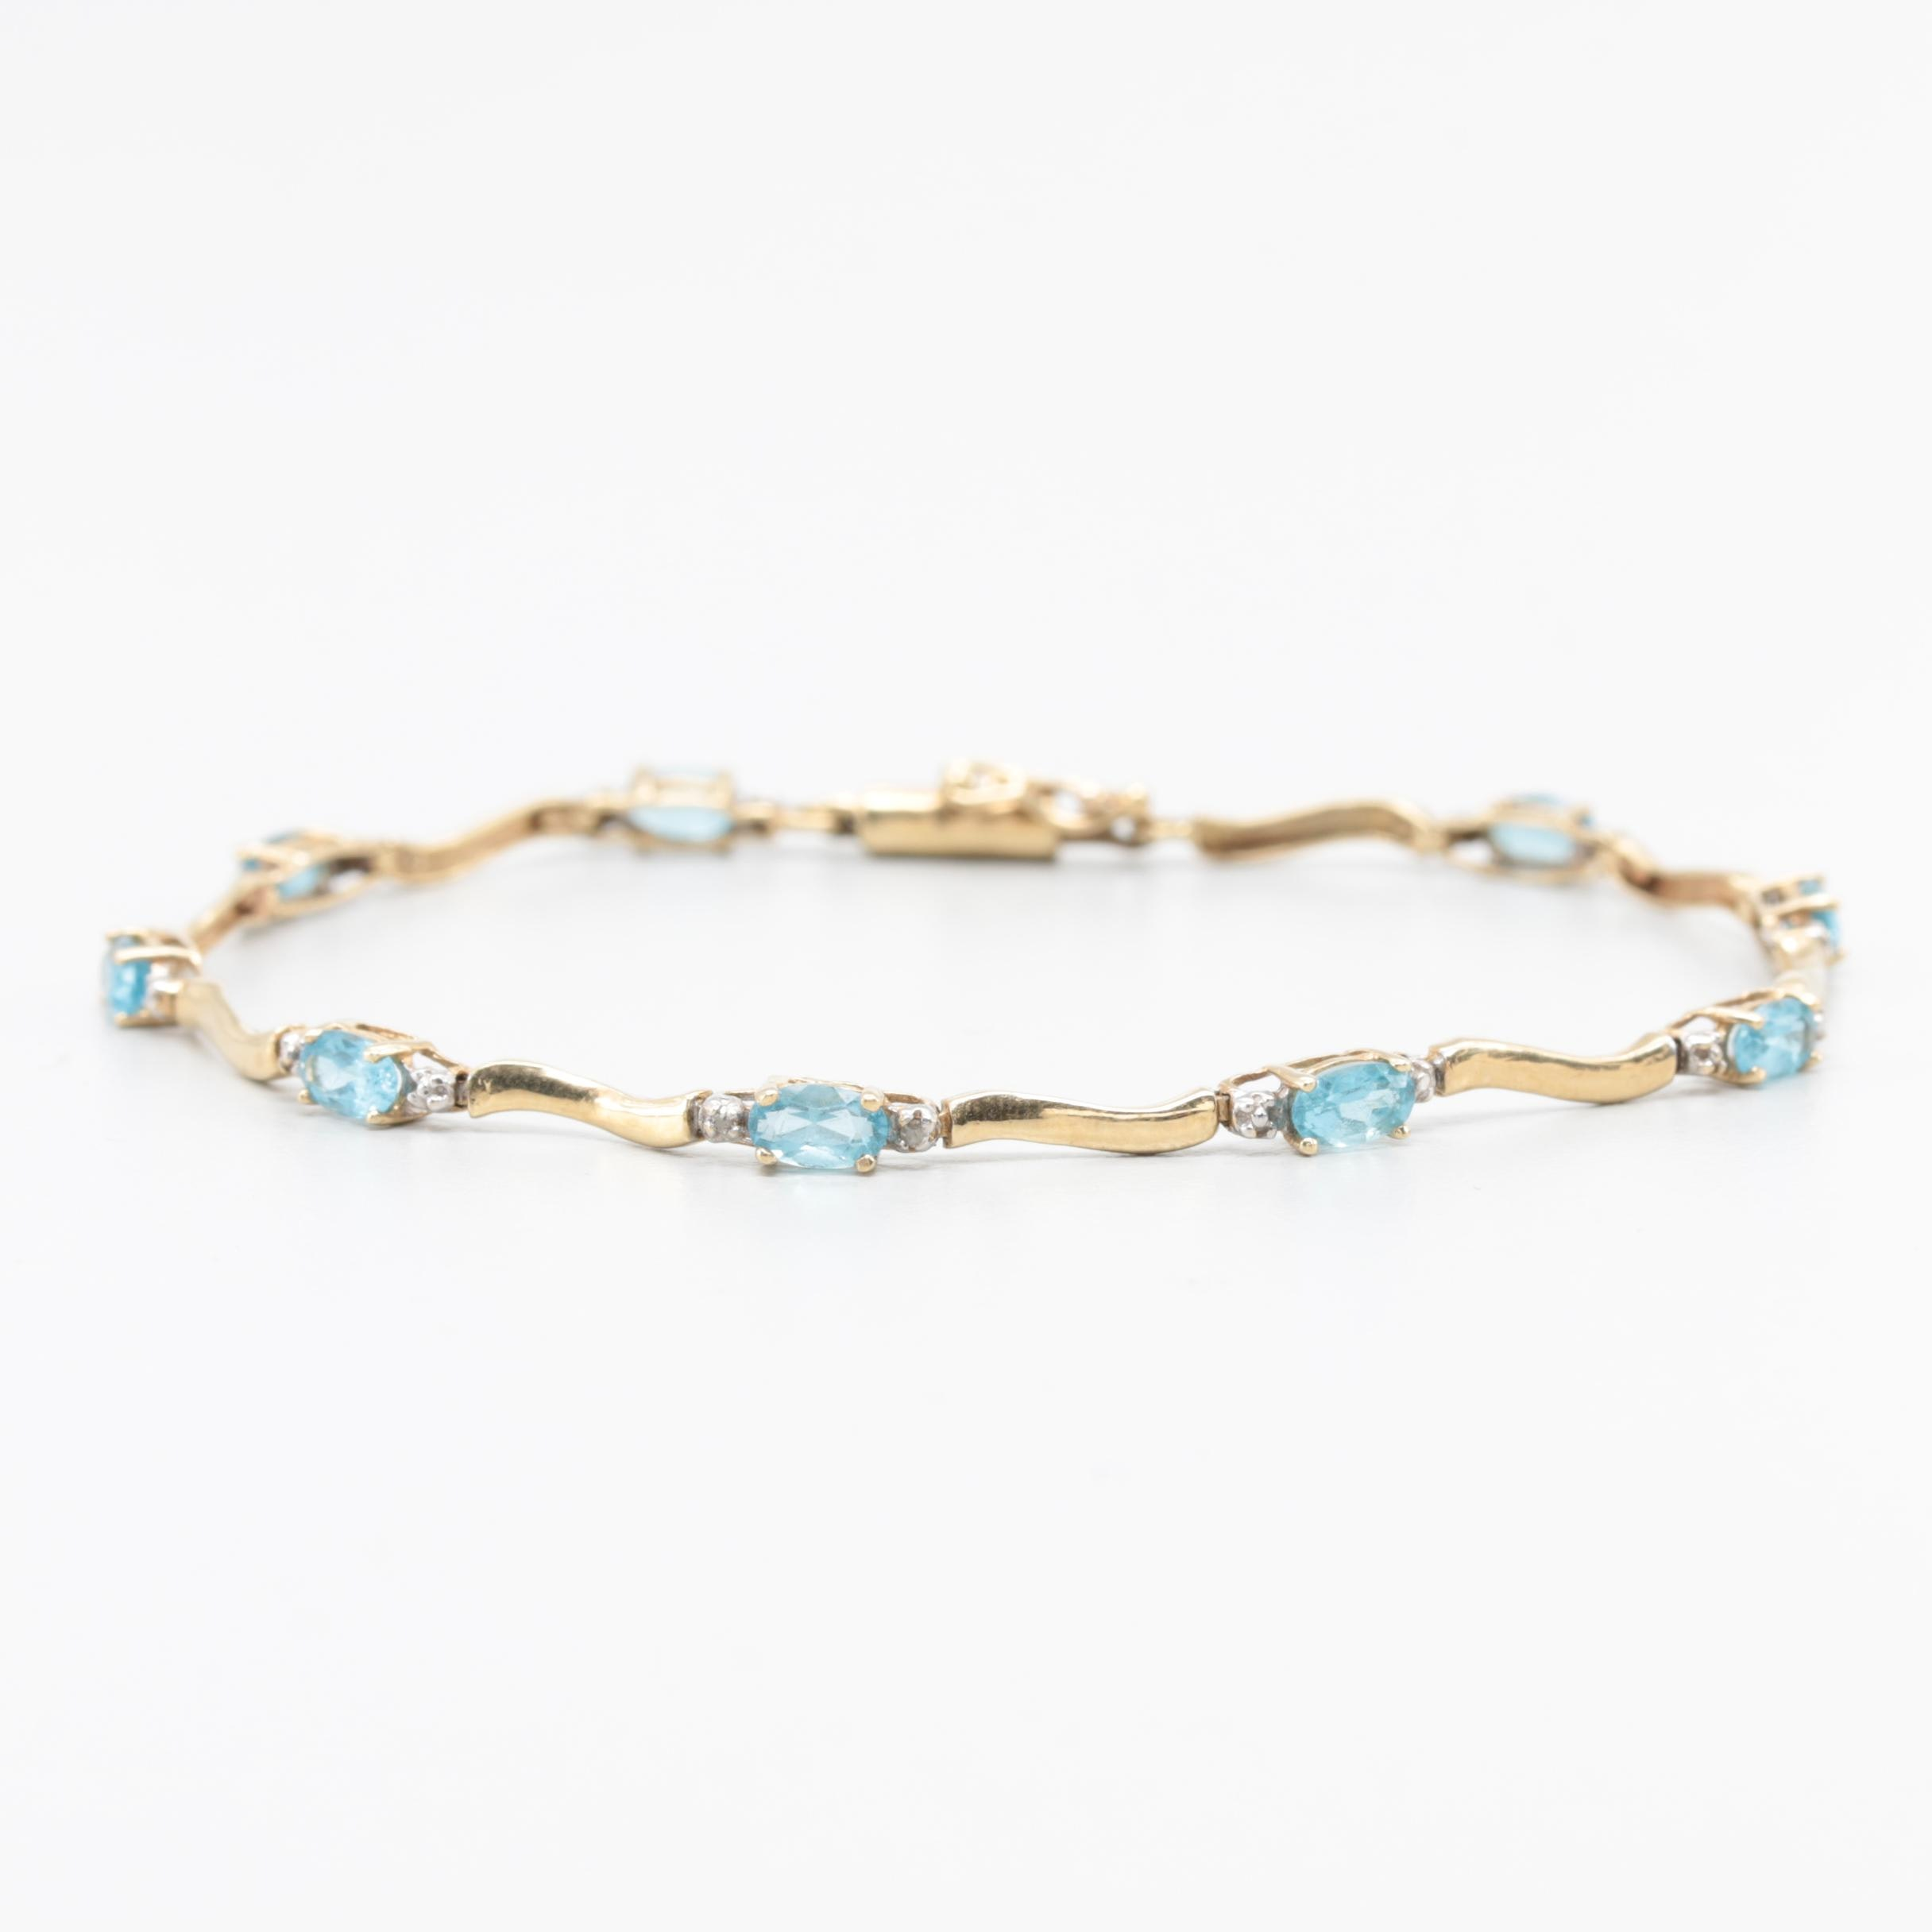 10K Yellow Gold Blue Topaz and Diamond Bracelet with White Gold Accents